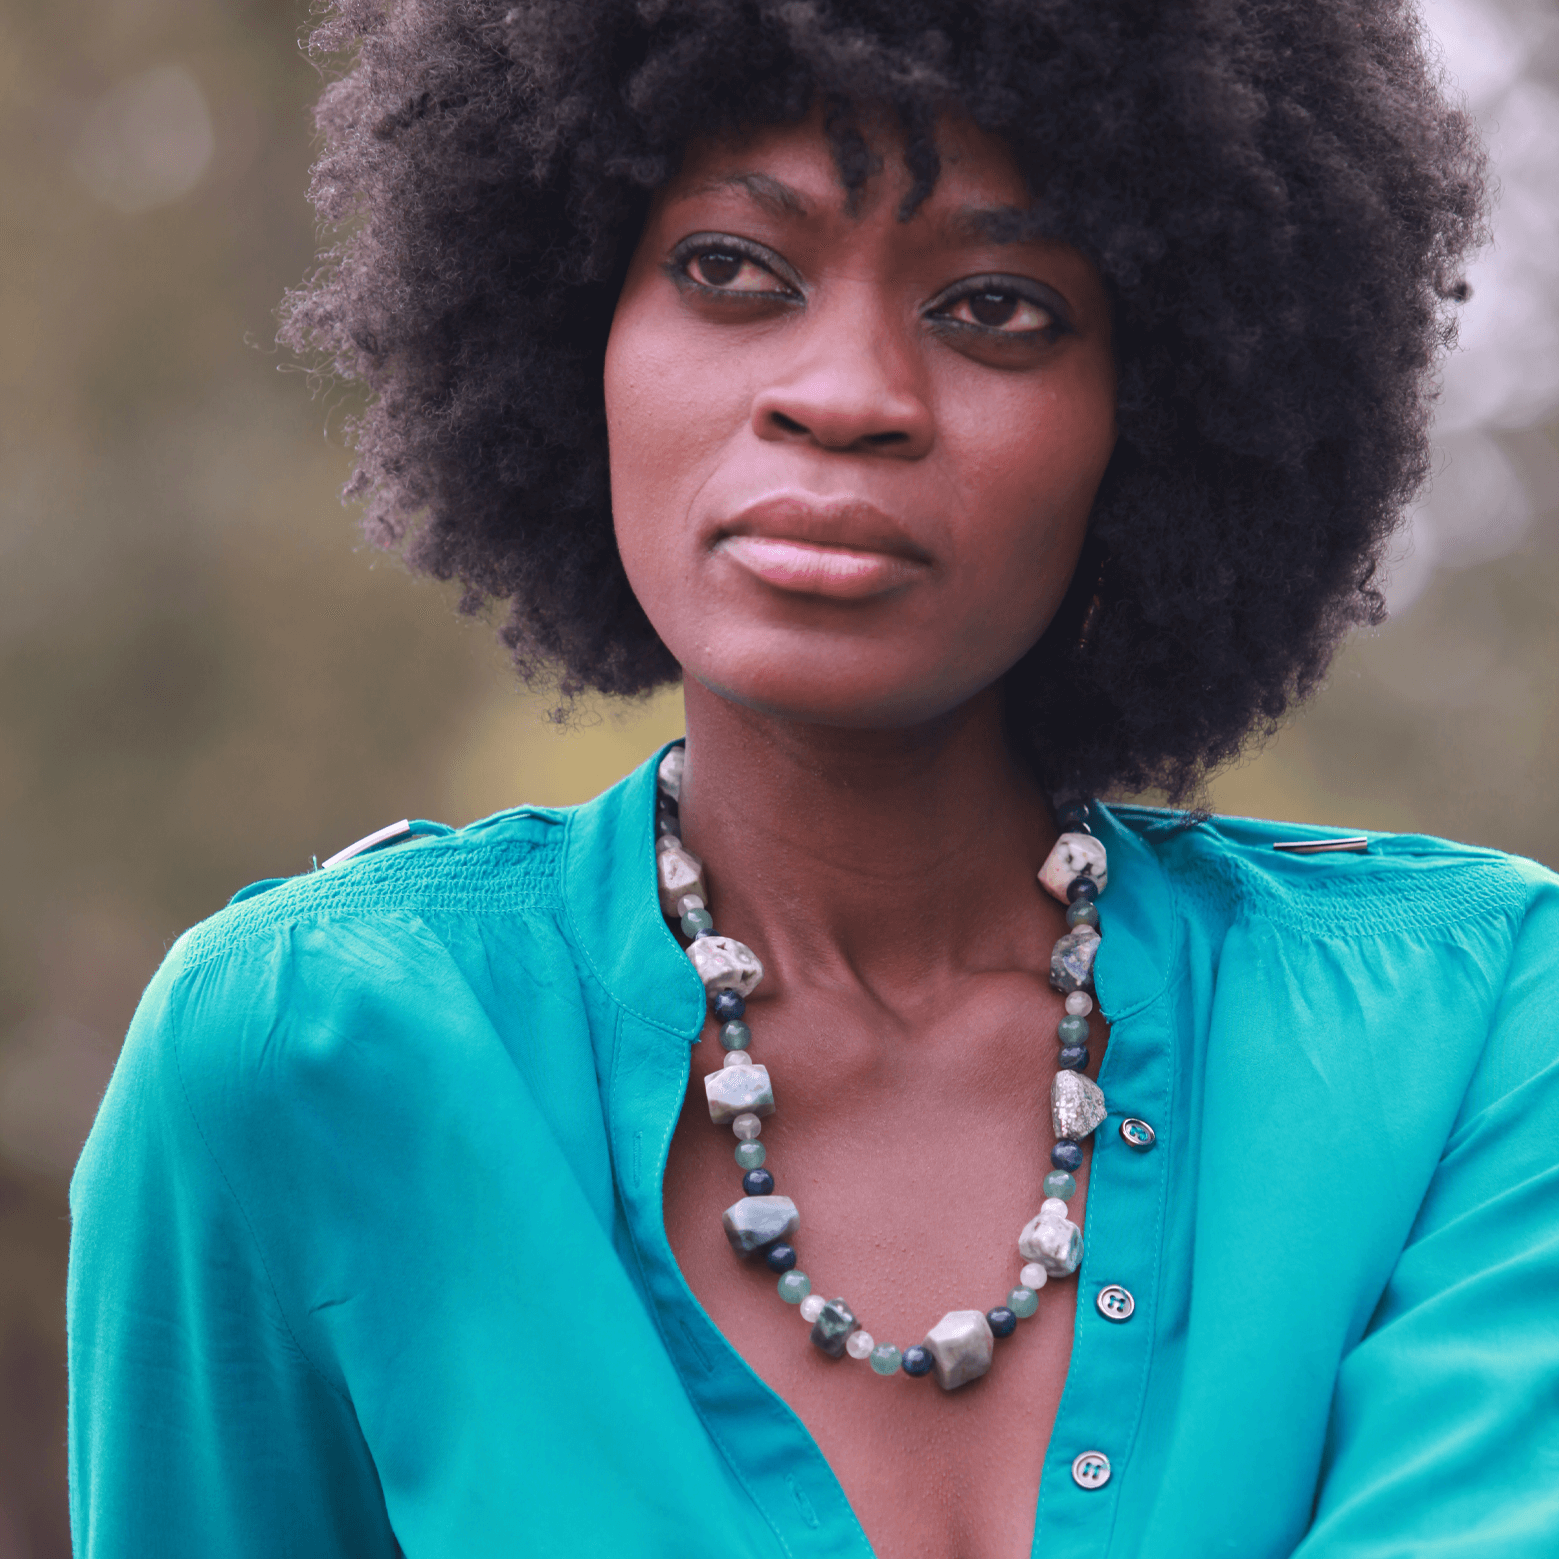 Beads, black model, beautiful african woman, necklace, product photography